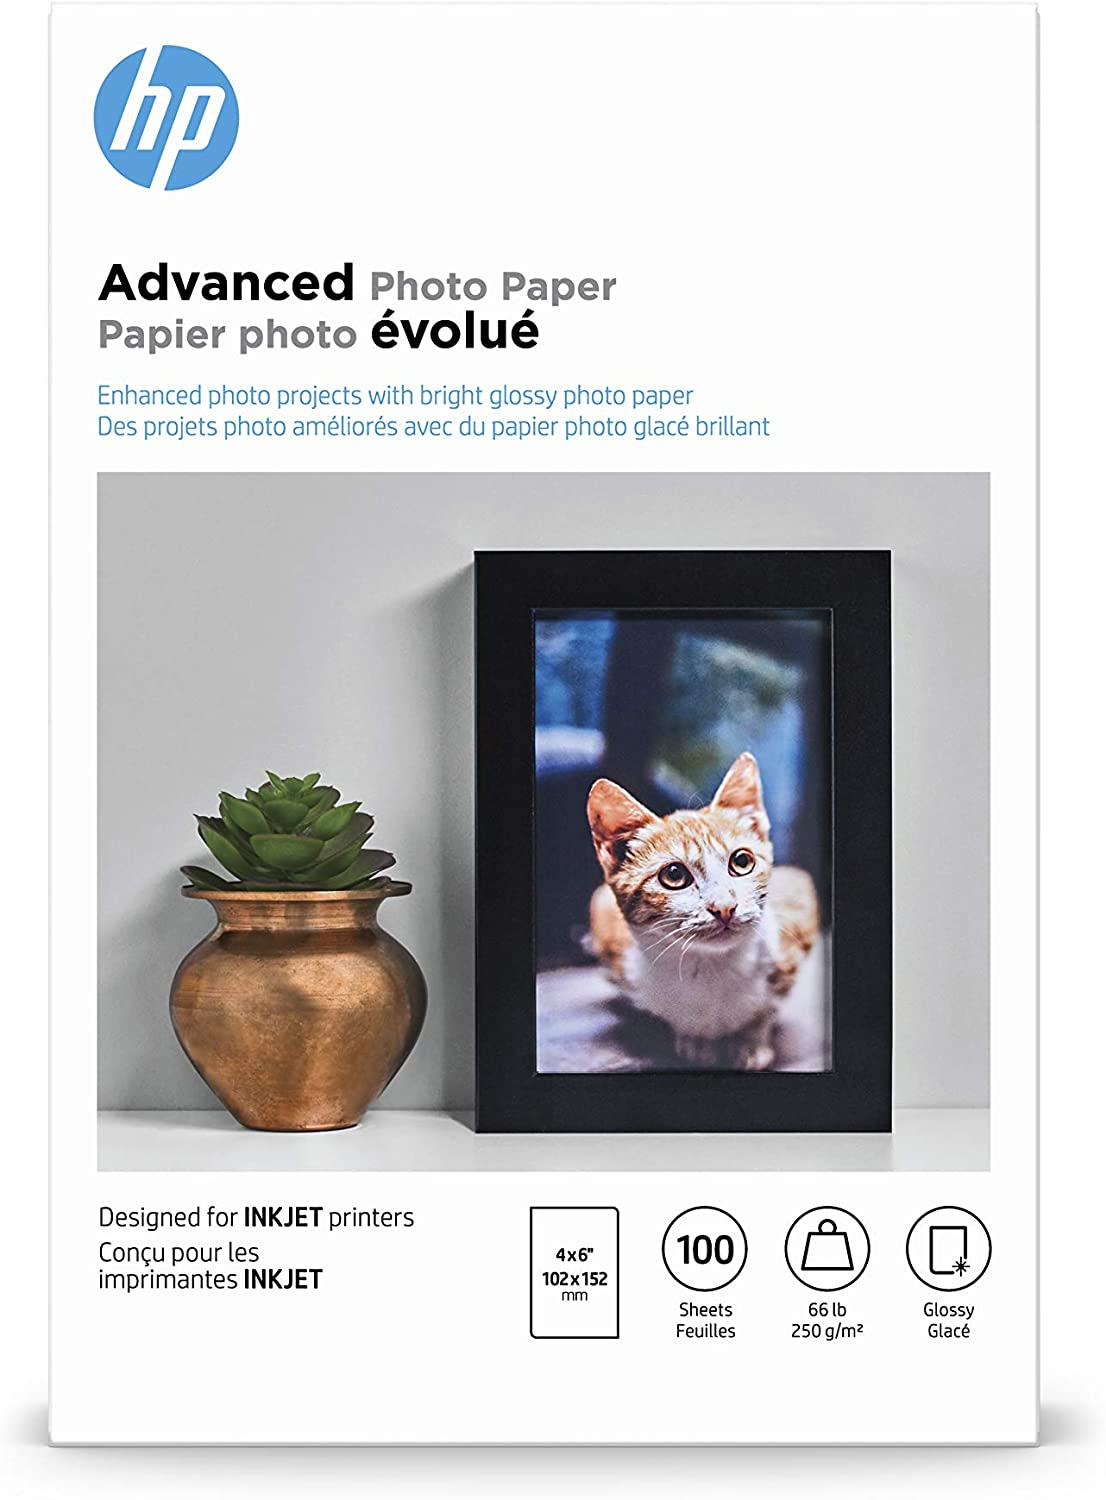 HP Advanced Photo Paper | Glossy | 4x6 | 100 Sheets